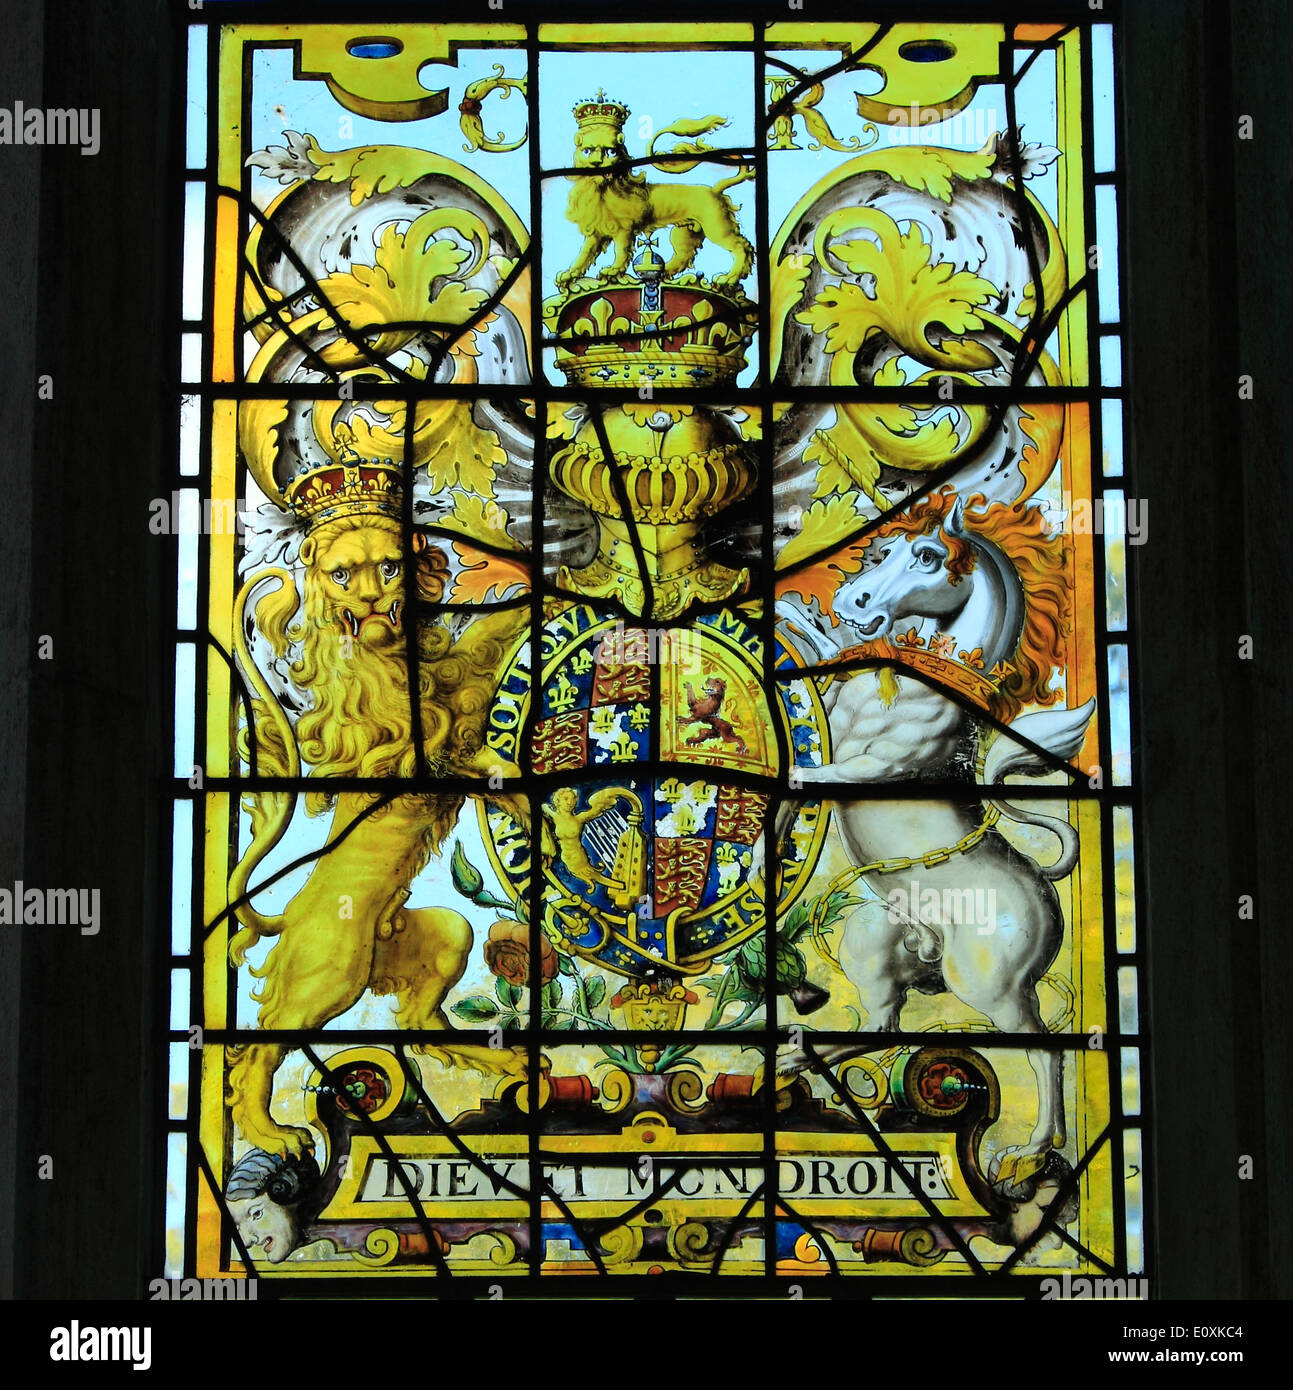 Stained glass window, Royal Arms, King Charles 2nd, late 17th century, Banningham, Norfolk - Stock Image